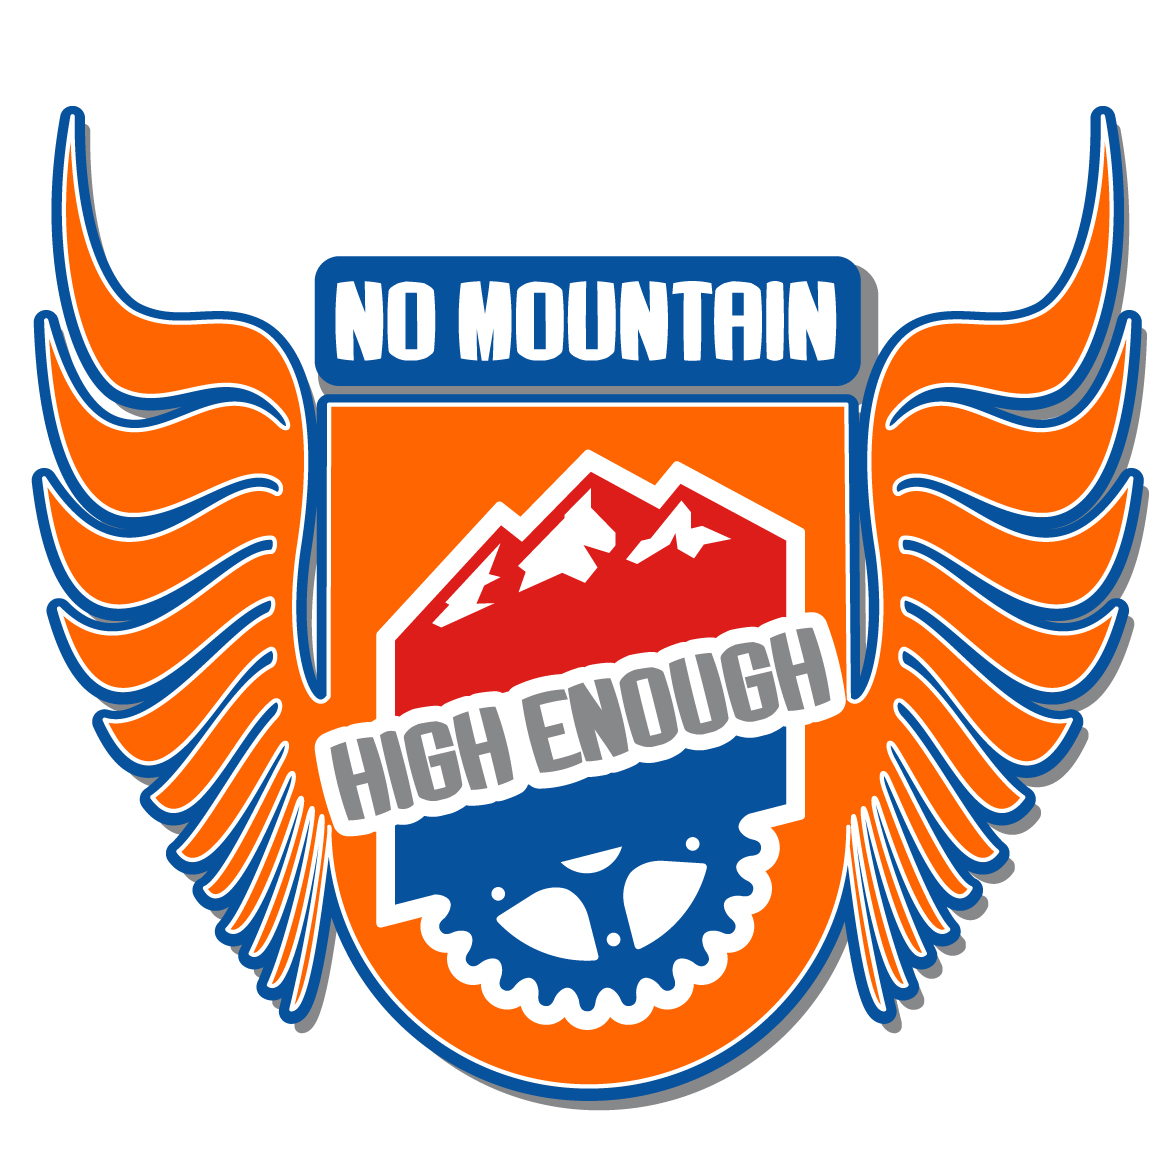 No Mountain High Enough